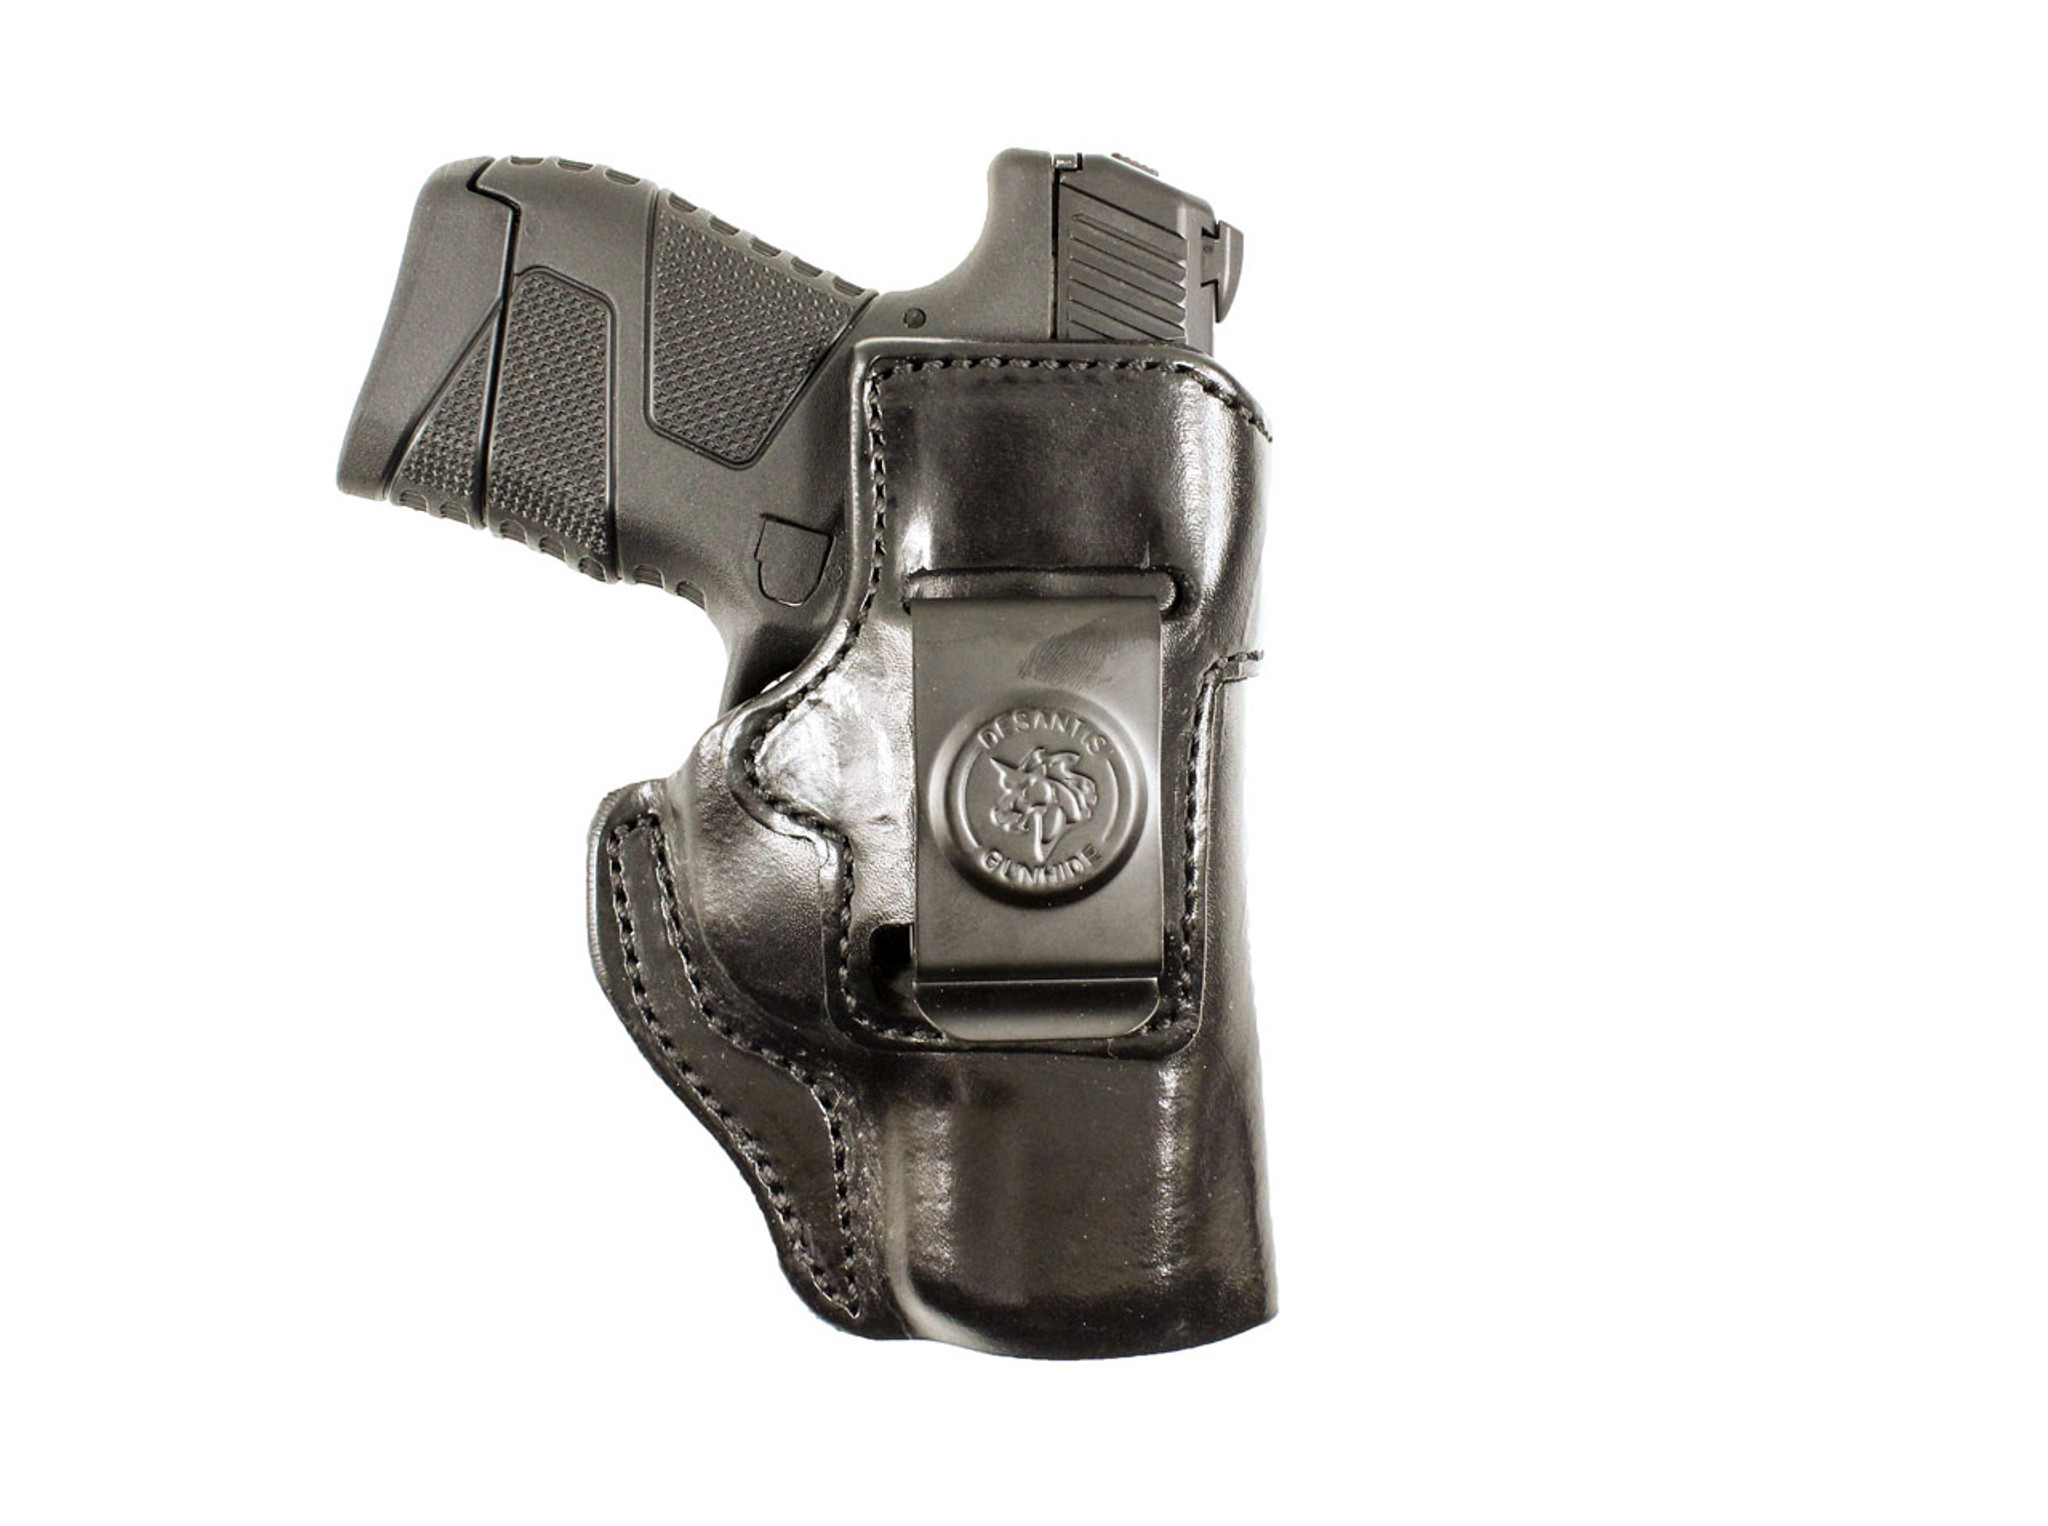 Molded leather iwb holster